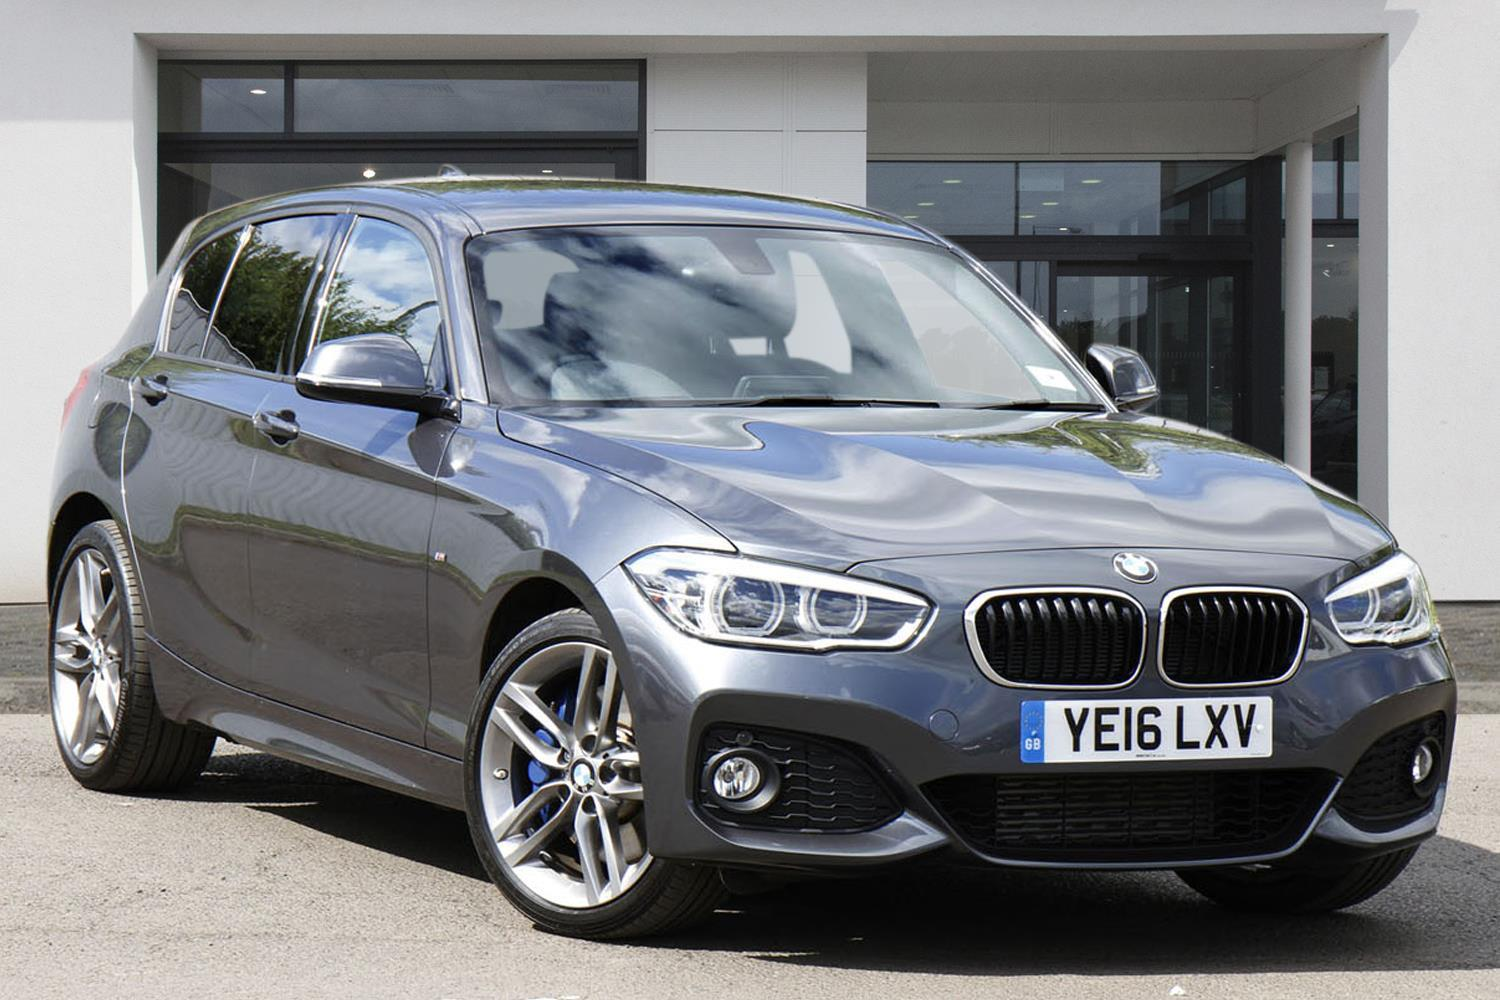 BMW 1 Series 5-door Sports Hatch YE16LXV - Image 6